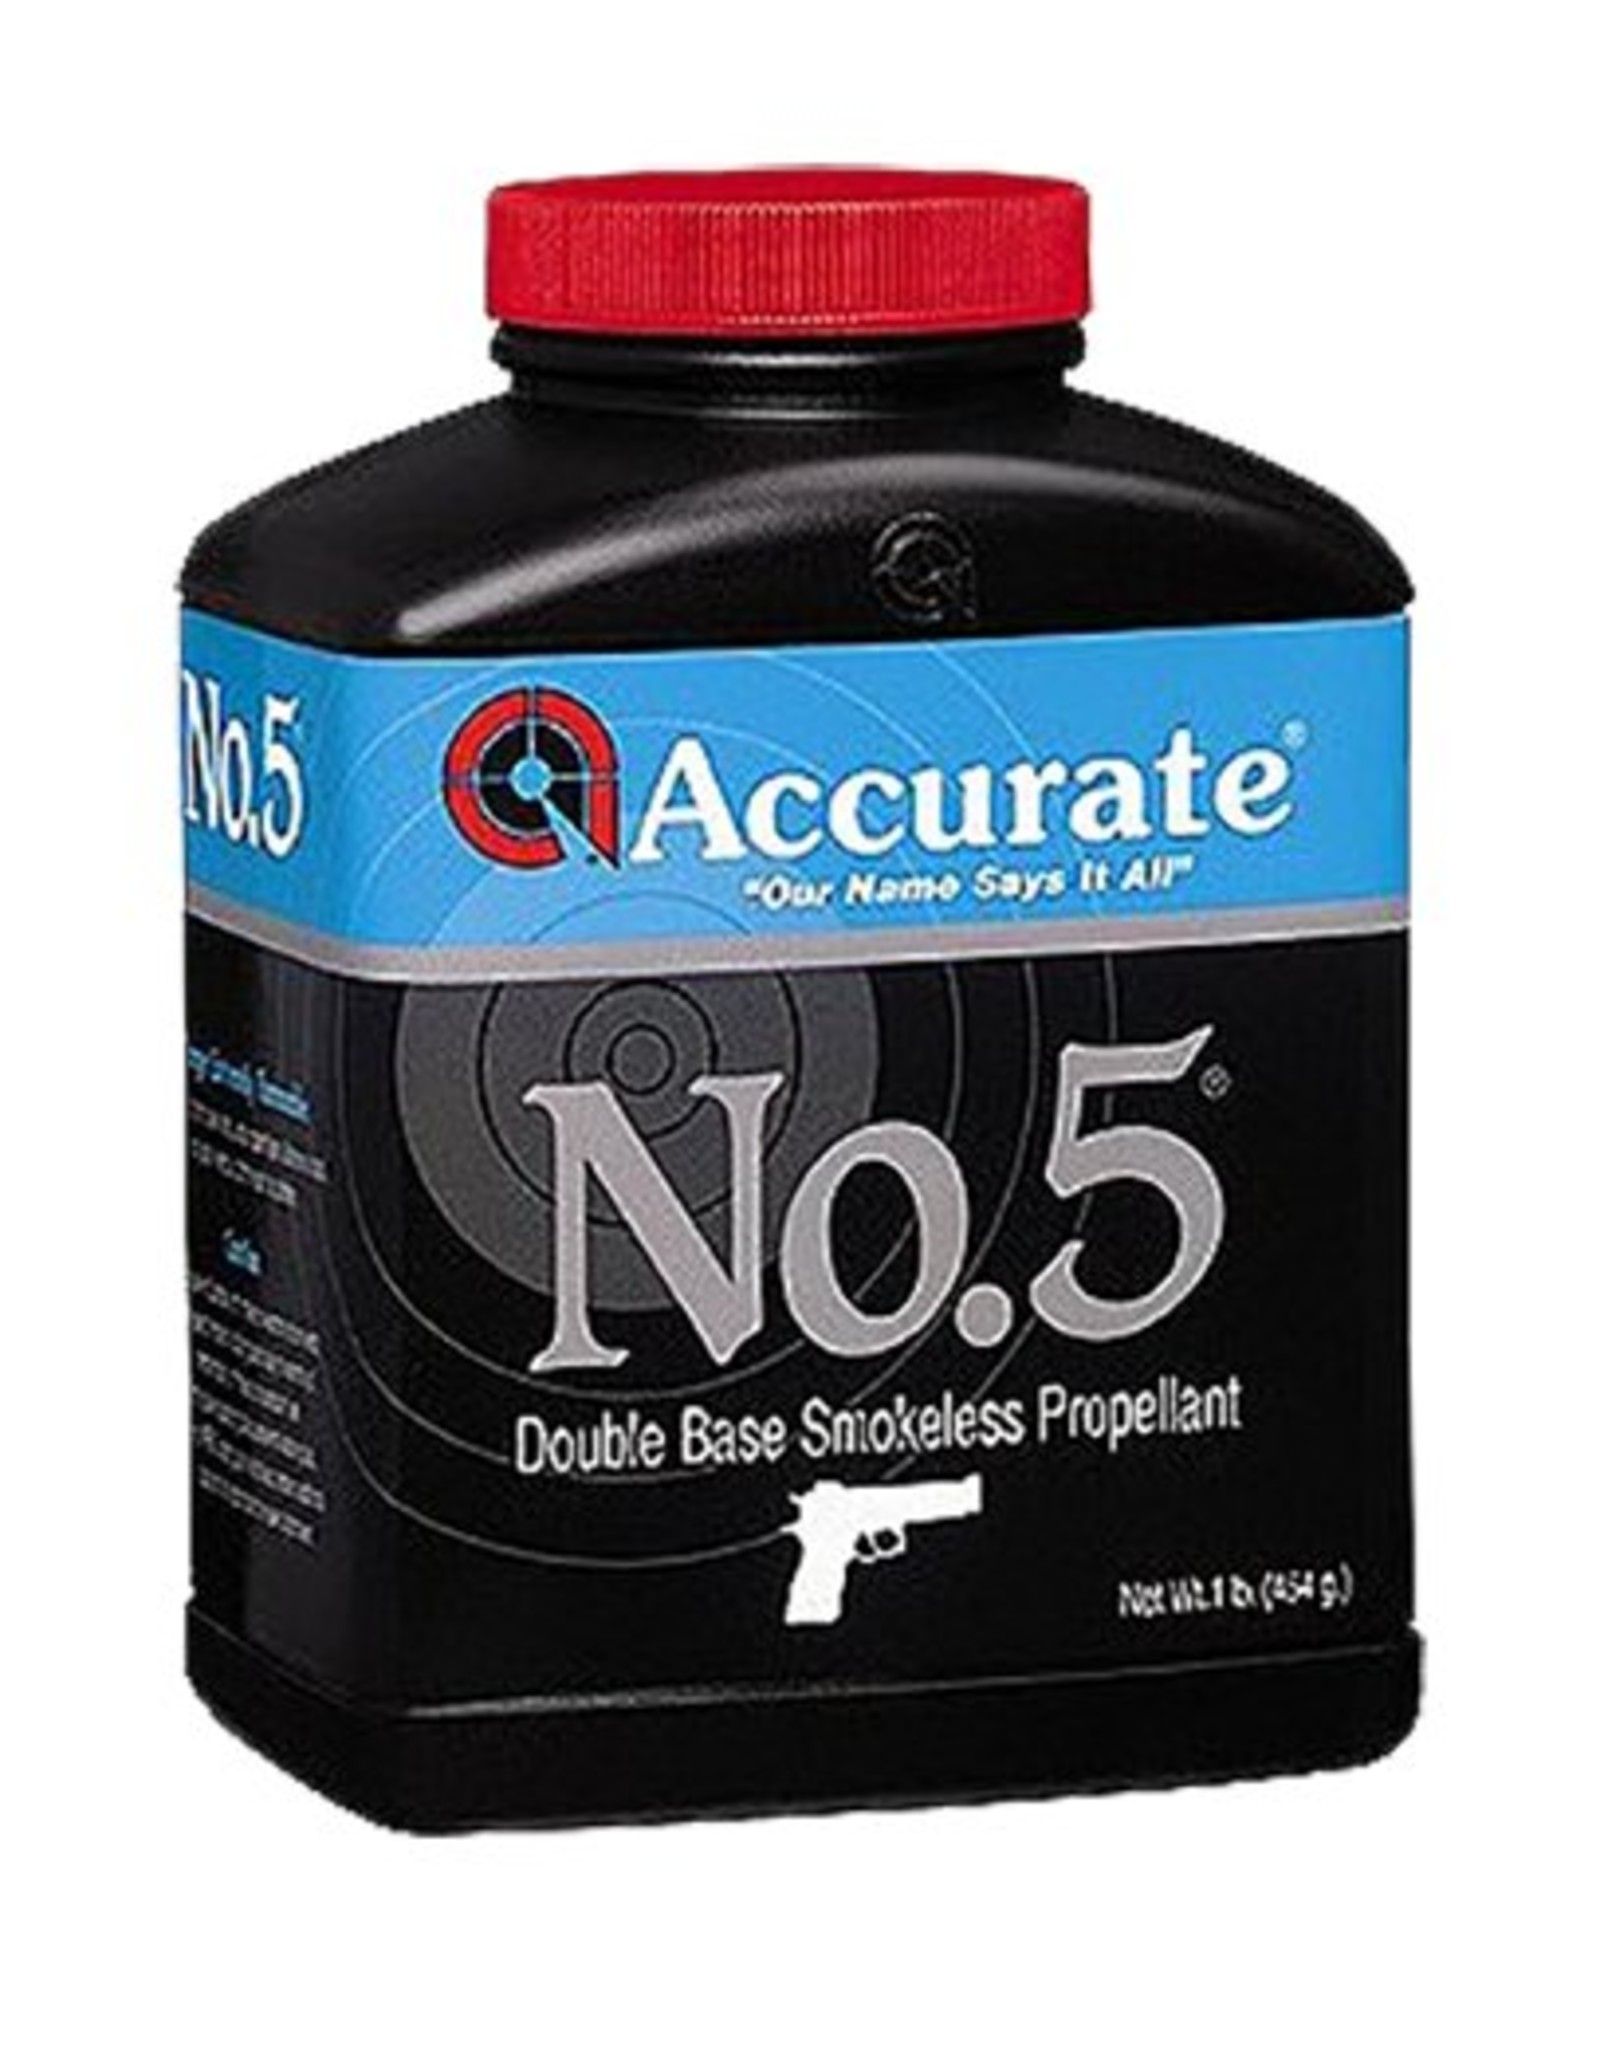 ACCURATE Accurate No. 5 Pistol Powder 1 LB